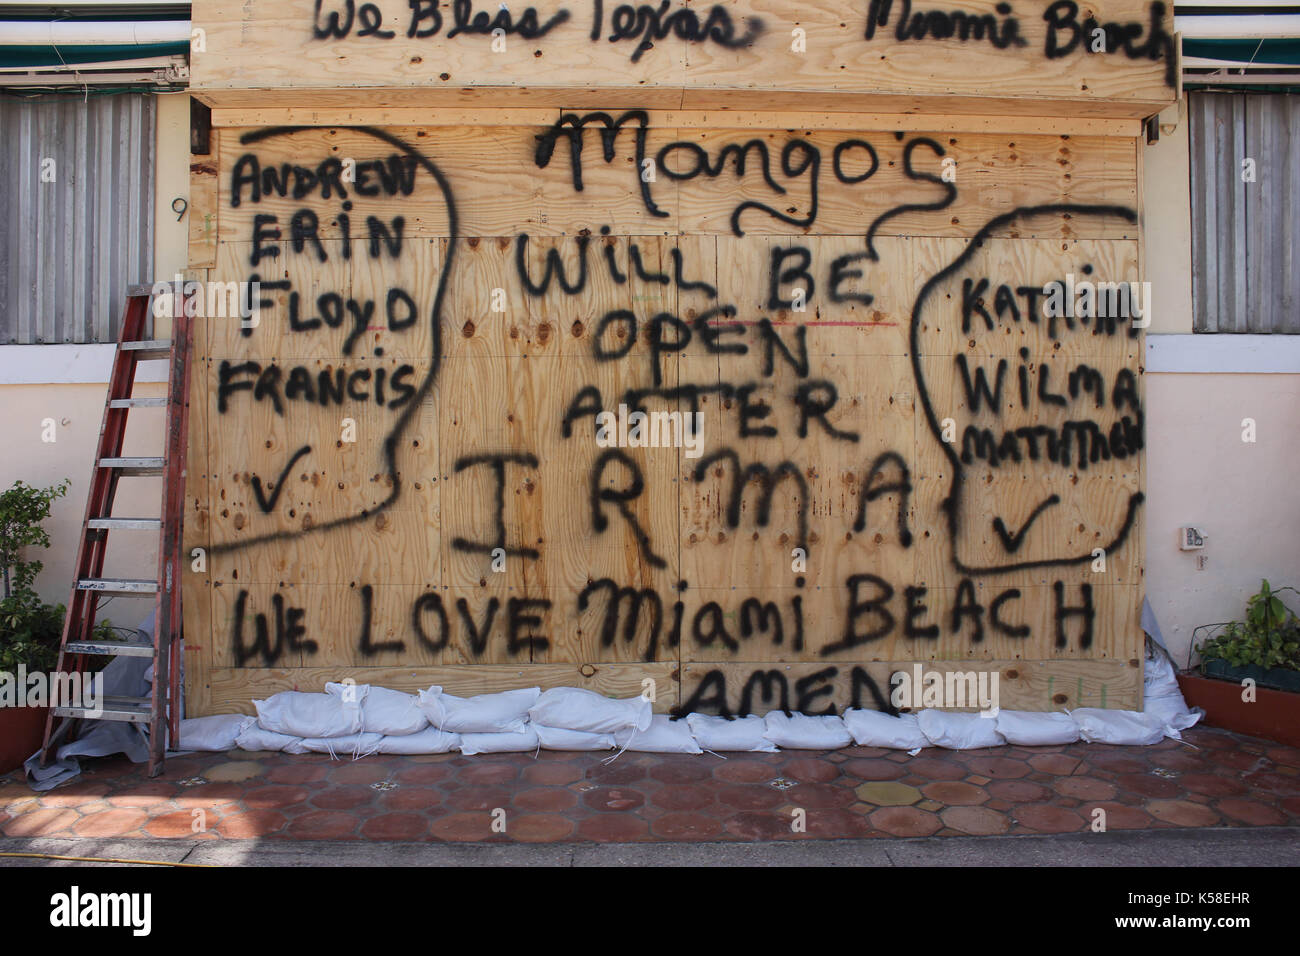 Miami Beach, Verlassen, vor Hurrikan Irma, 8. September 2017 Stockfoto